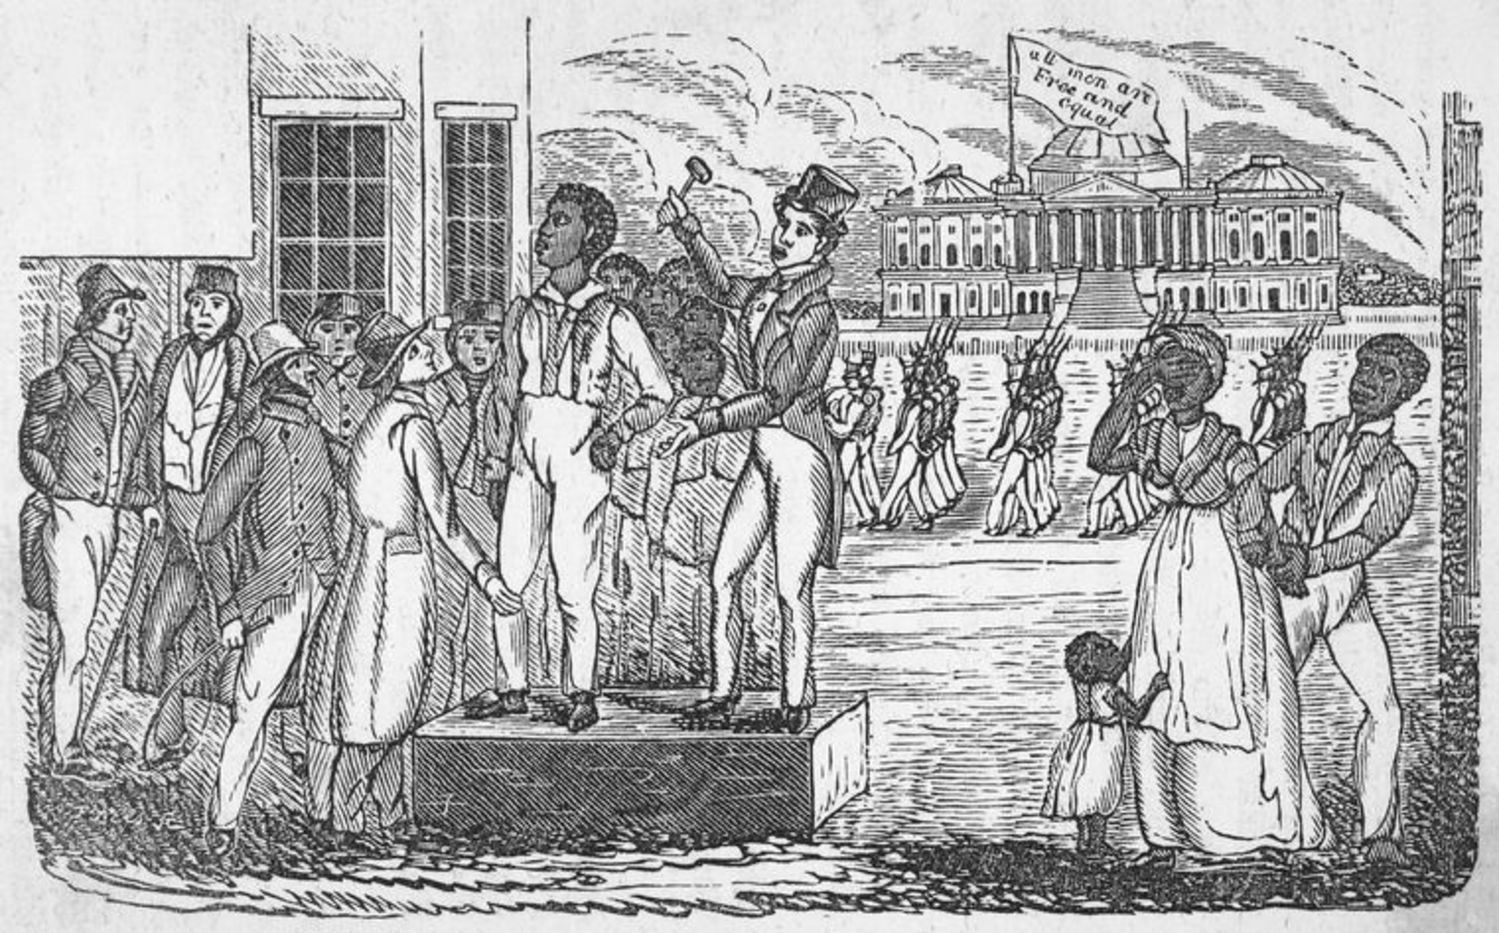 foundation essay this article is part of a series marking the the weeping time a forgotten history of the largest slave auction ever on american soil by kristopher monroe